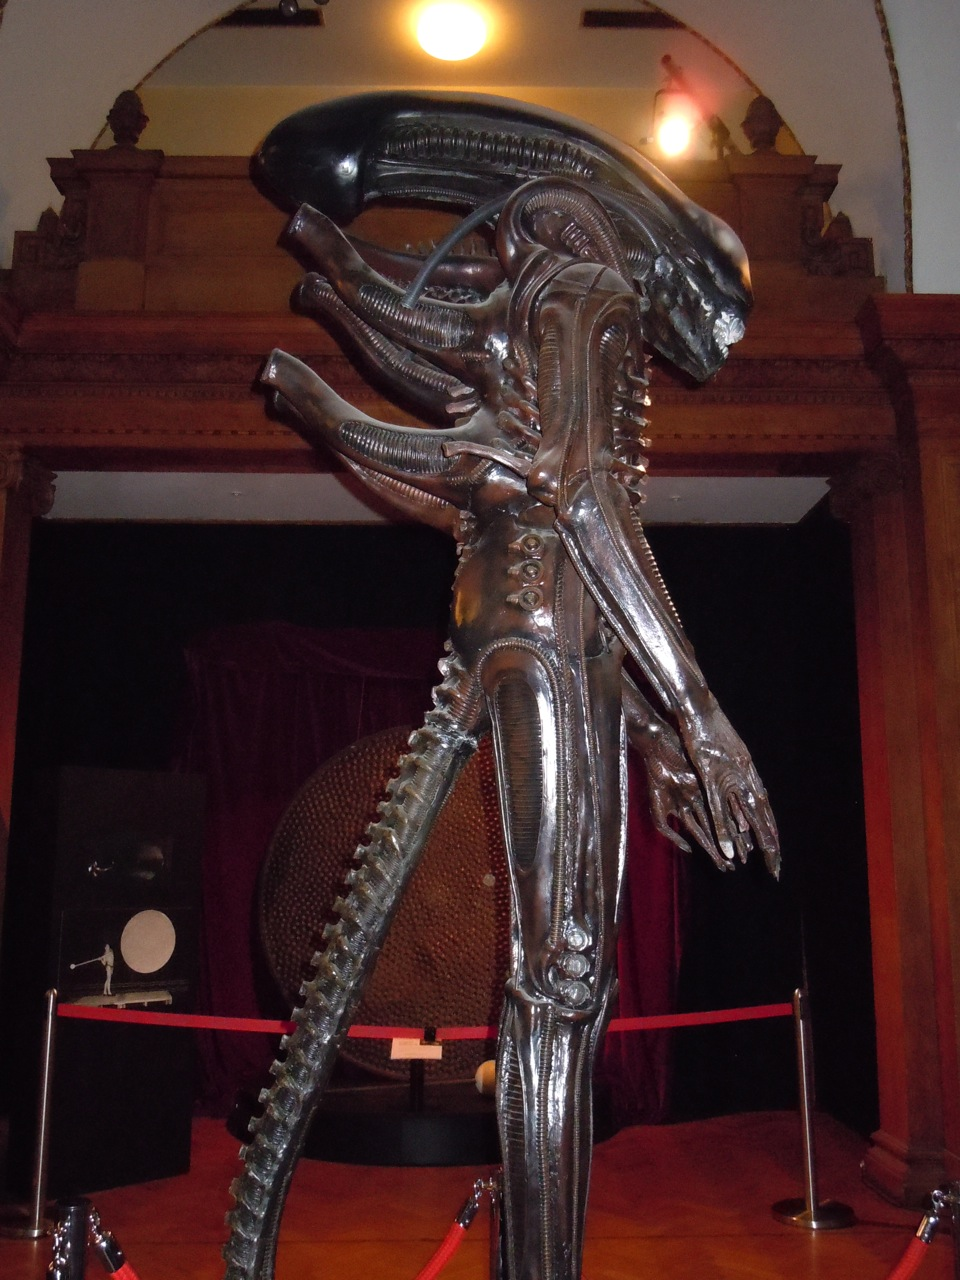 Hollywood Movie Costumes and Props Alien replica from Ridley Scottu0027s 1979 classic movie... Original film costumes and props on display & Hollywood Movie Costumes and Props: Alien replica from Ridley ...